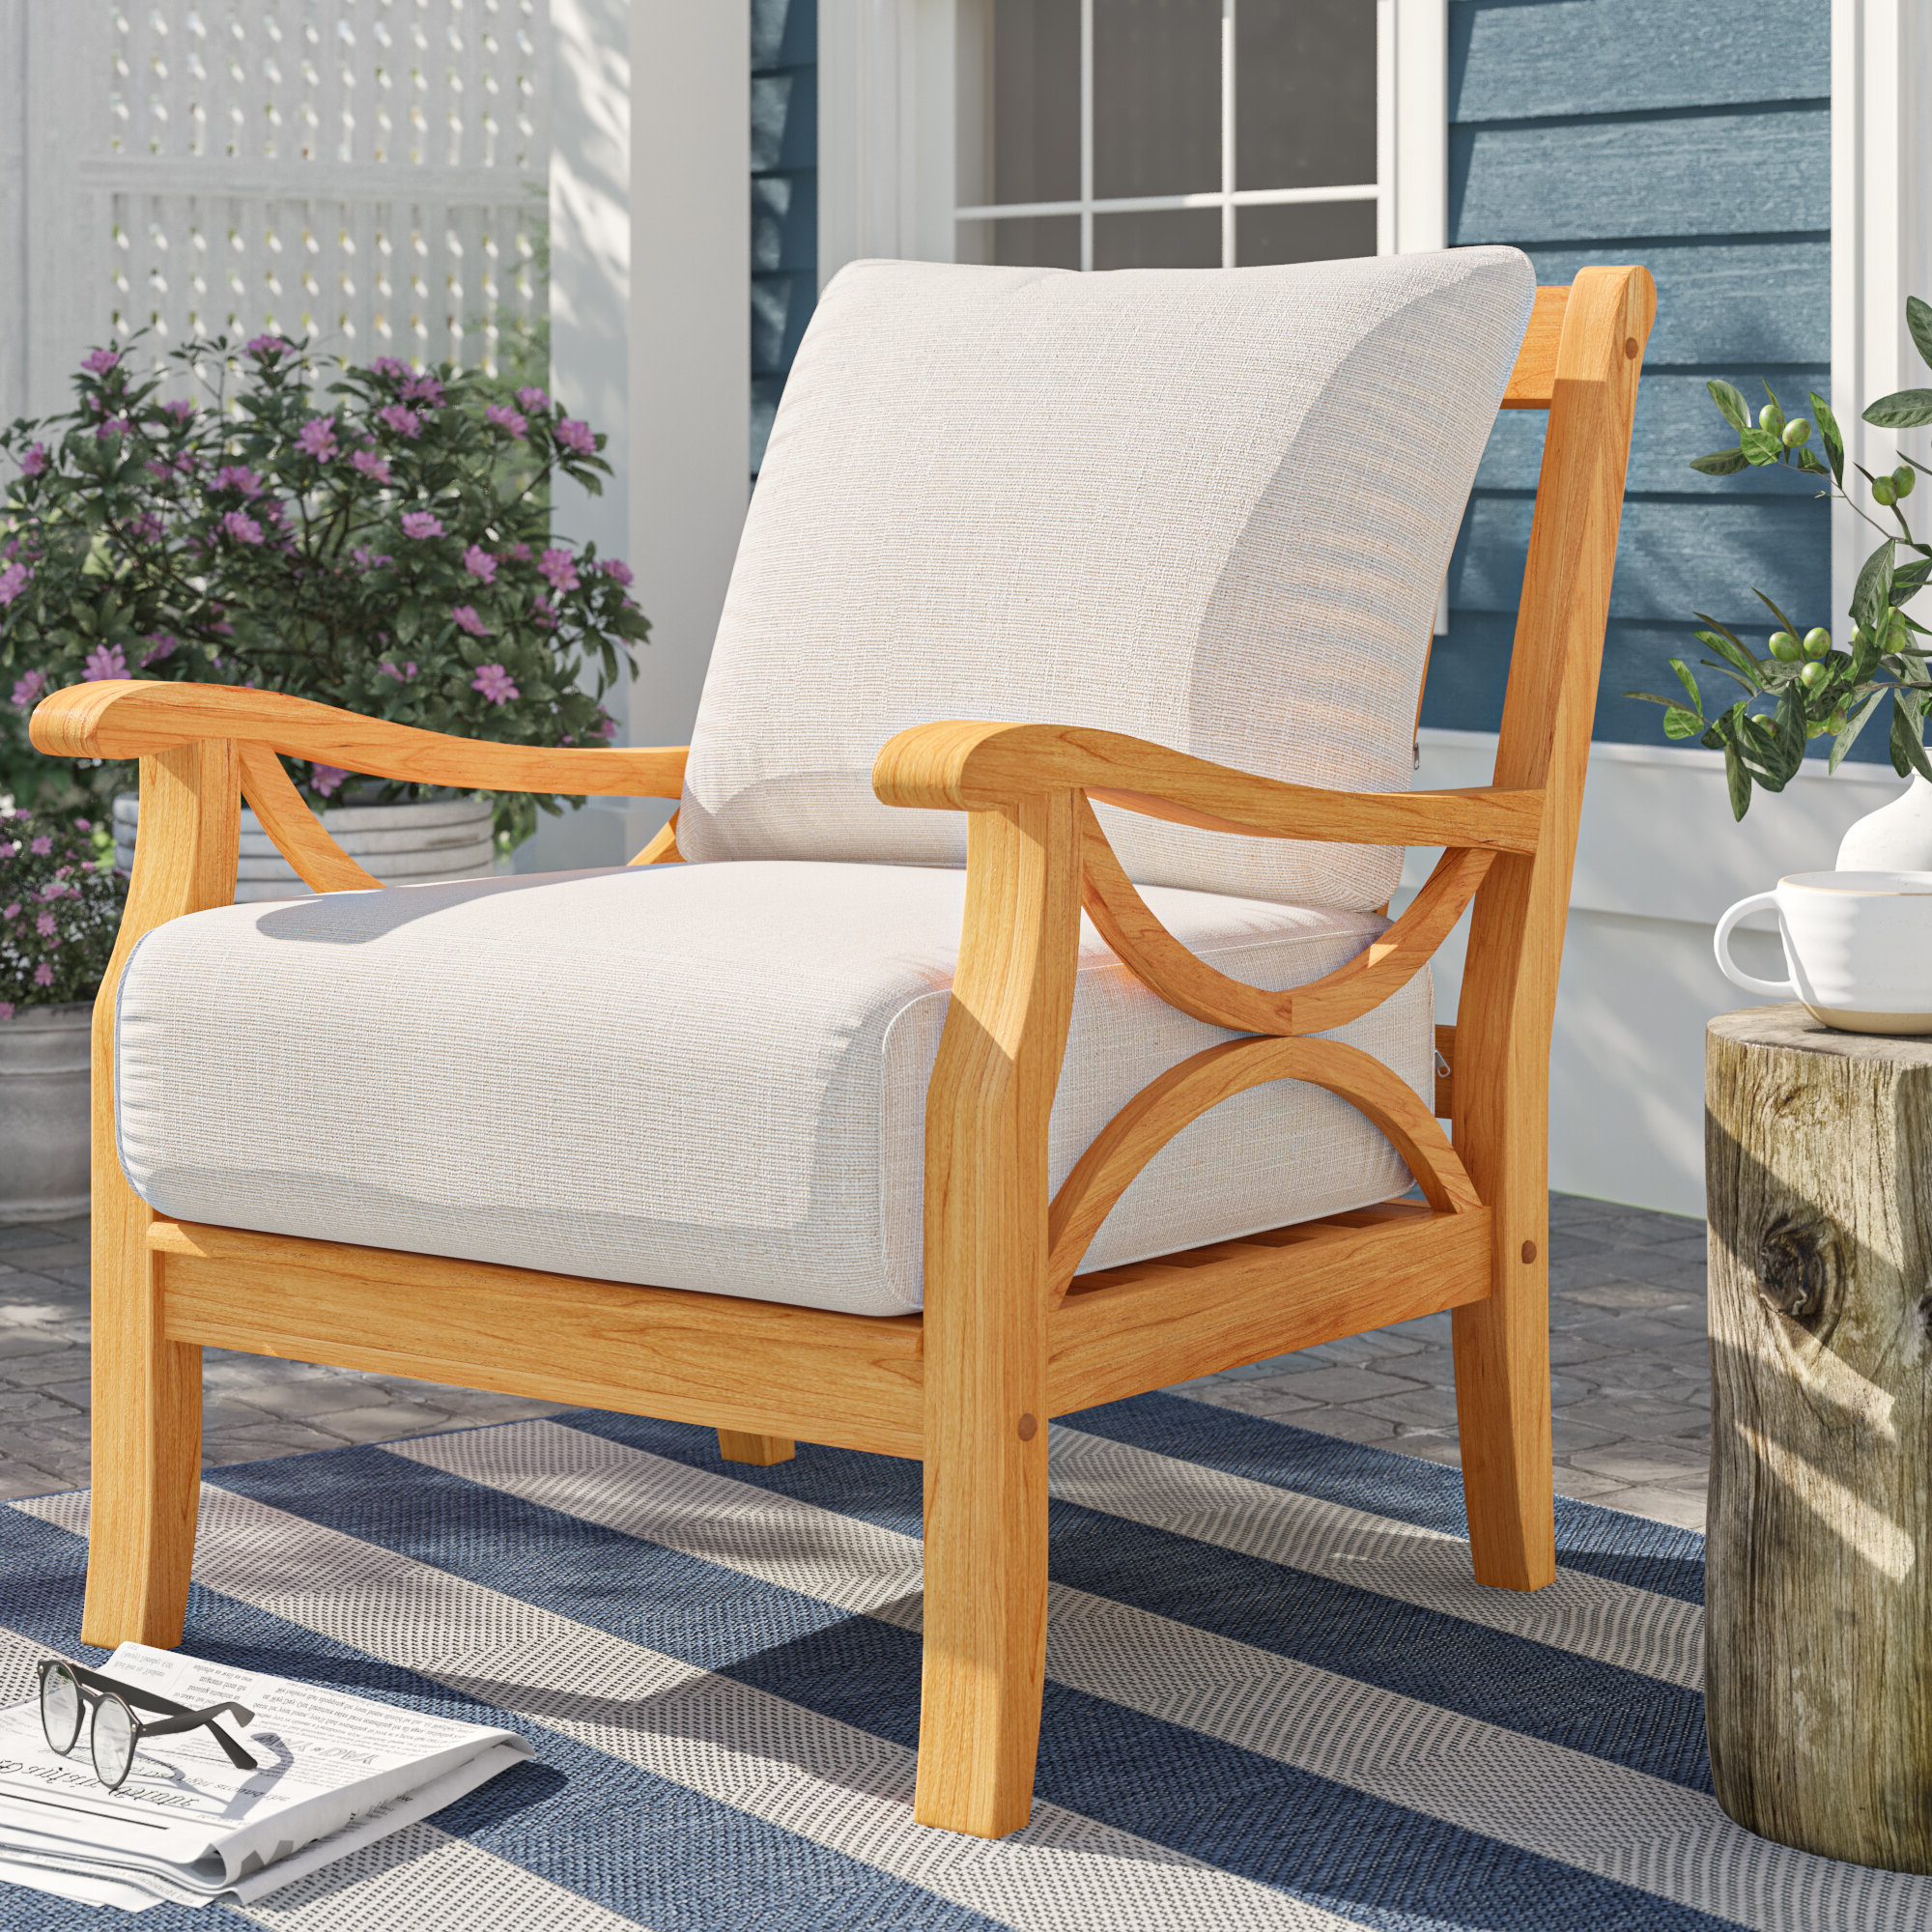 Brunswick Teak Patio Chair With Cushions With Regard To Trendy Baltic Patio Sofas With Cushions (Gallery 12 of 25)